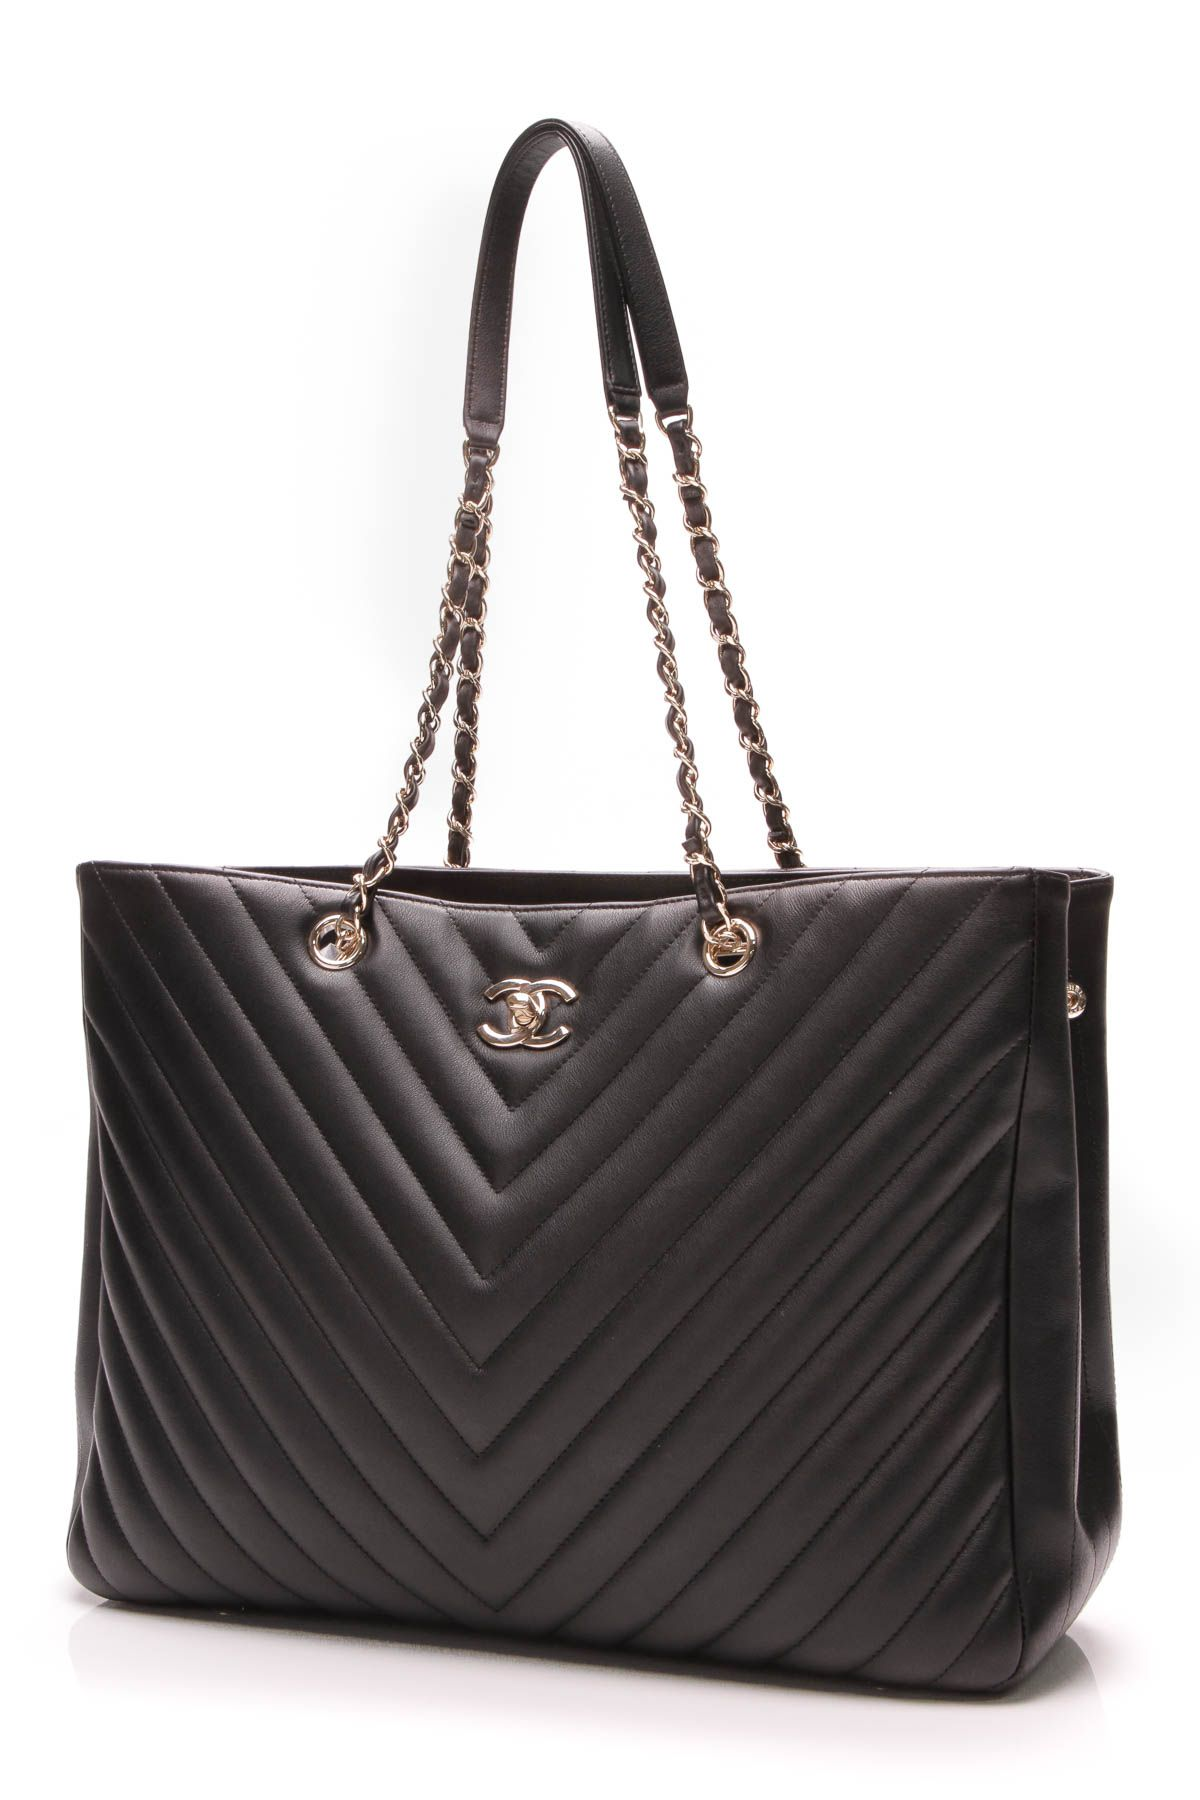 3a5d60570f8f Chevron Tote Bag - Black Grained Calfskin in 2019